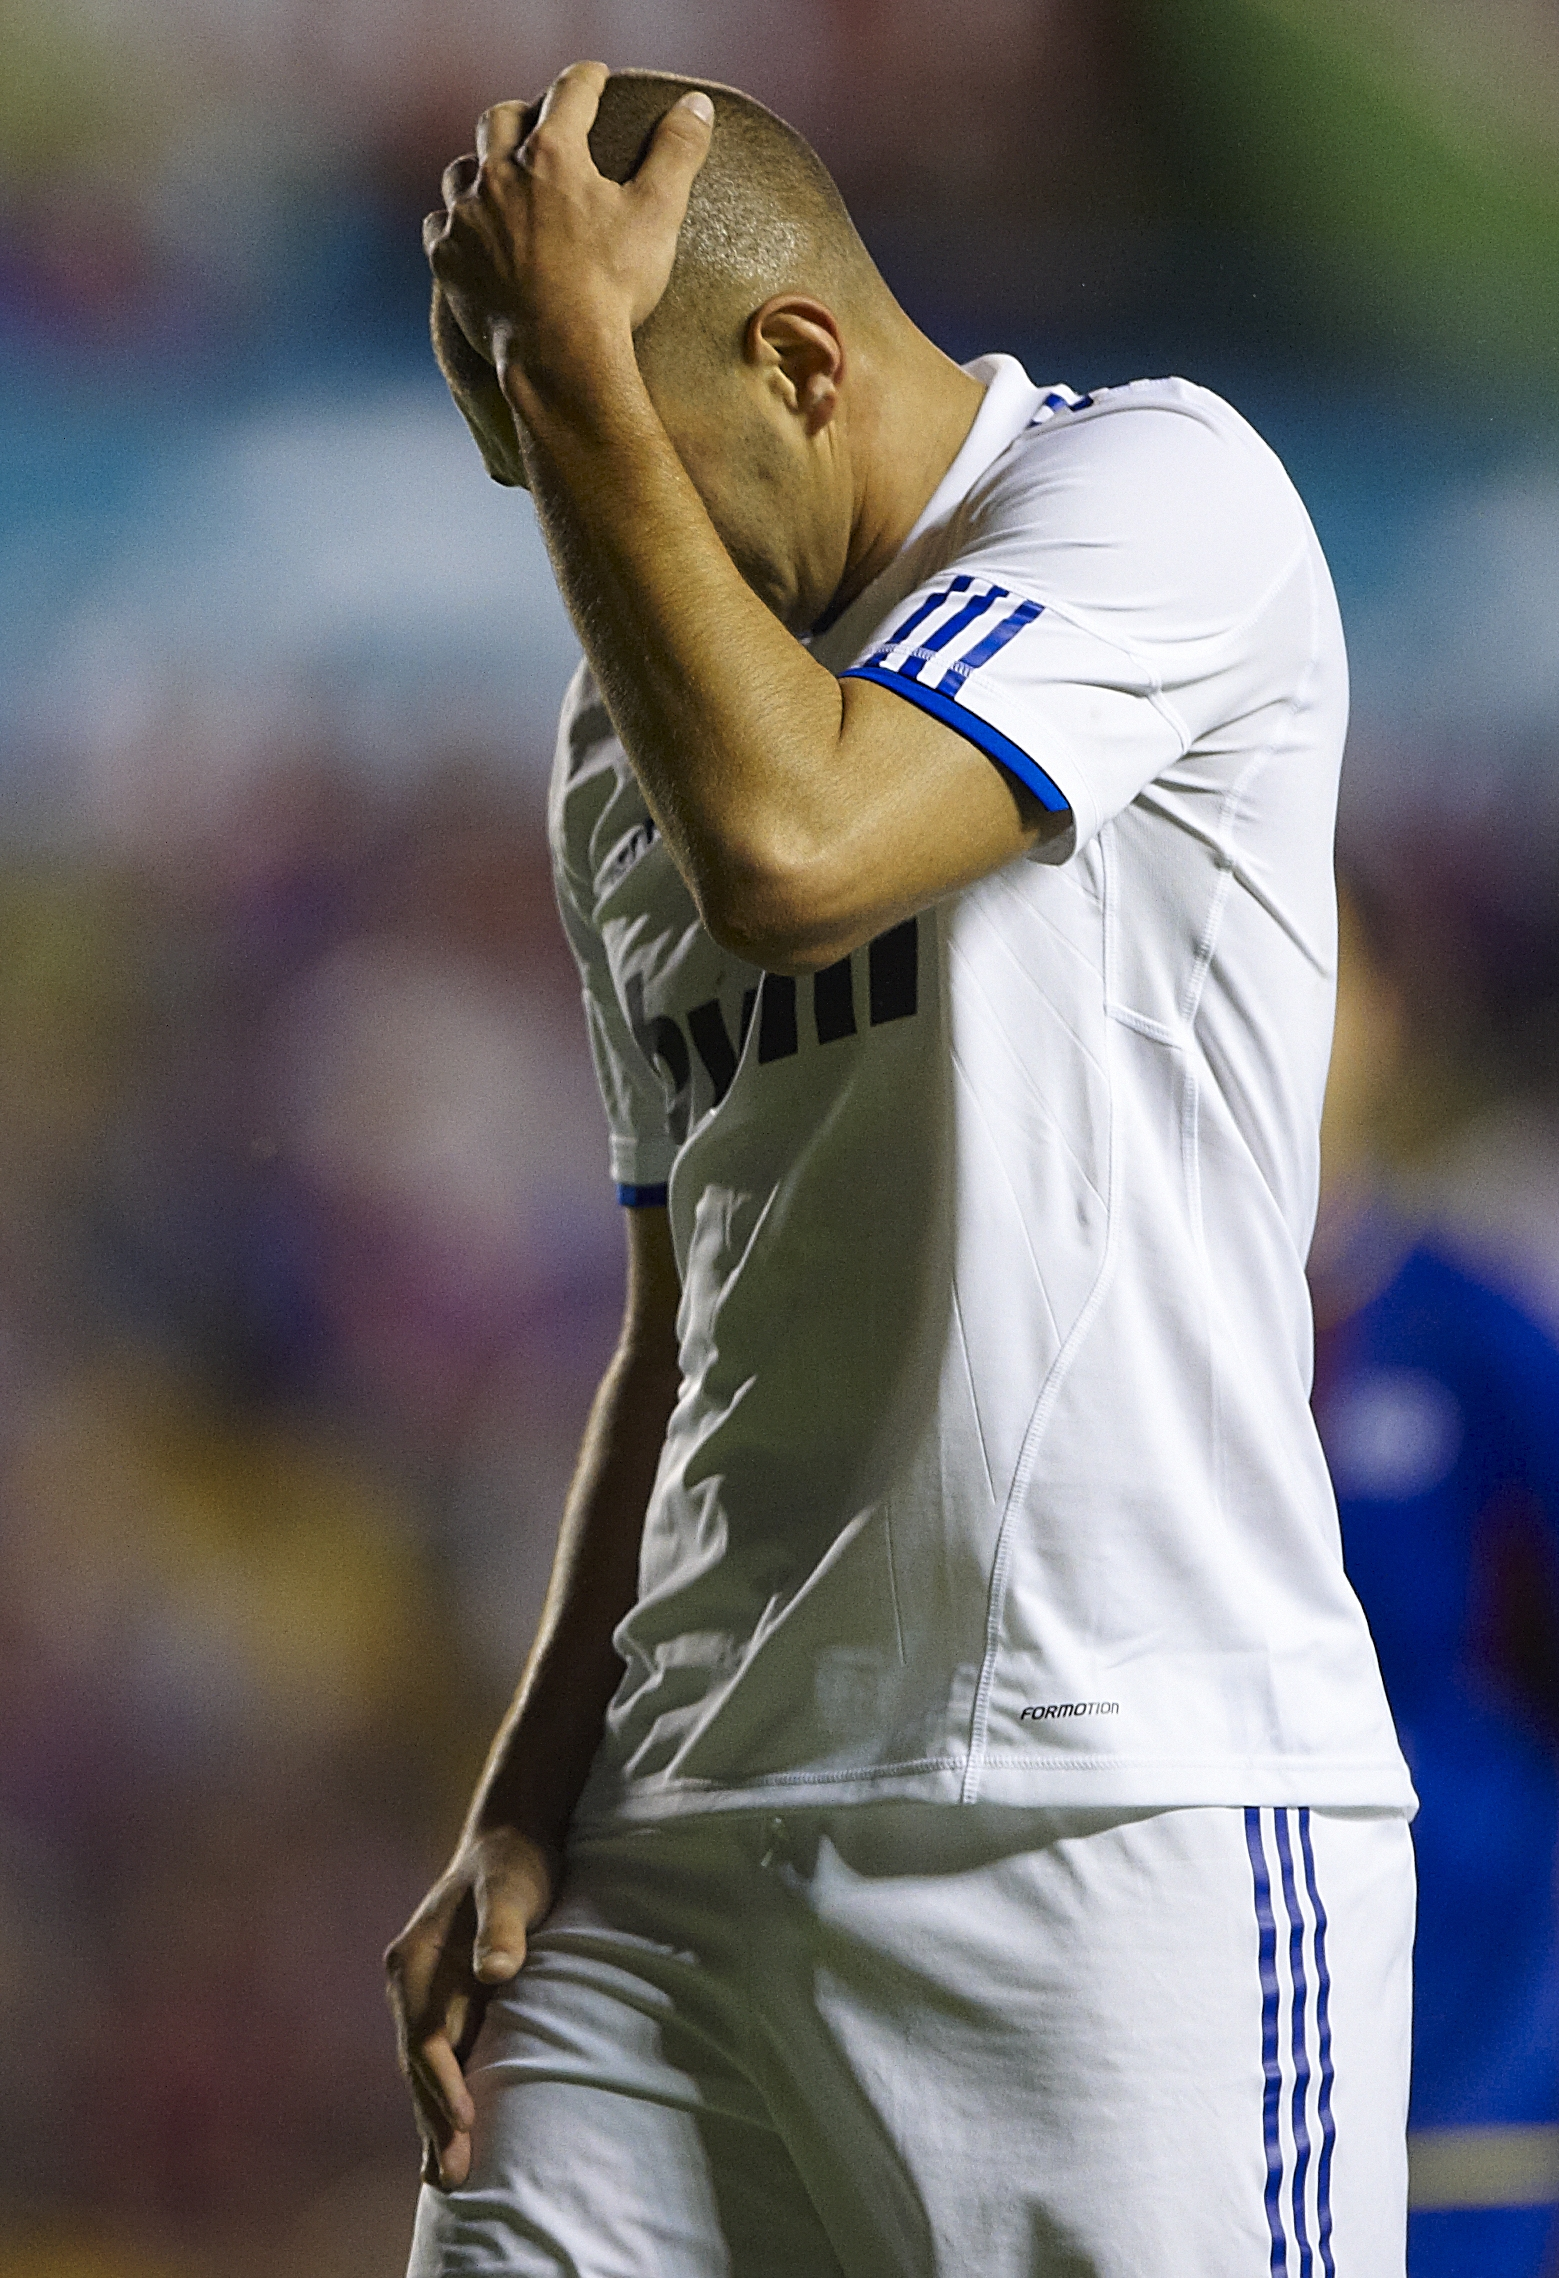 VALENCIA, SPAIN - SEPTEMBER 25:  Karim Benzema of Real Madrid reacts during the La Liga match between Levante UD and Real Madrid at Ciutat de Valencia on September 25, 2010 in Valencia, Spain.  (Photo by Manuel Queimadelos Alonso/Getty Images)